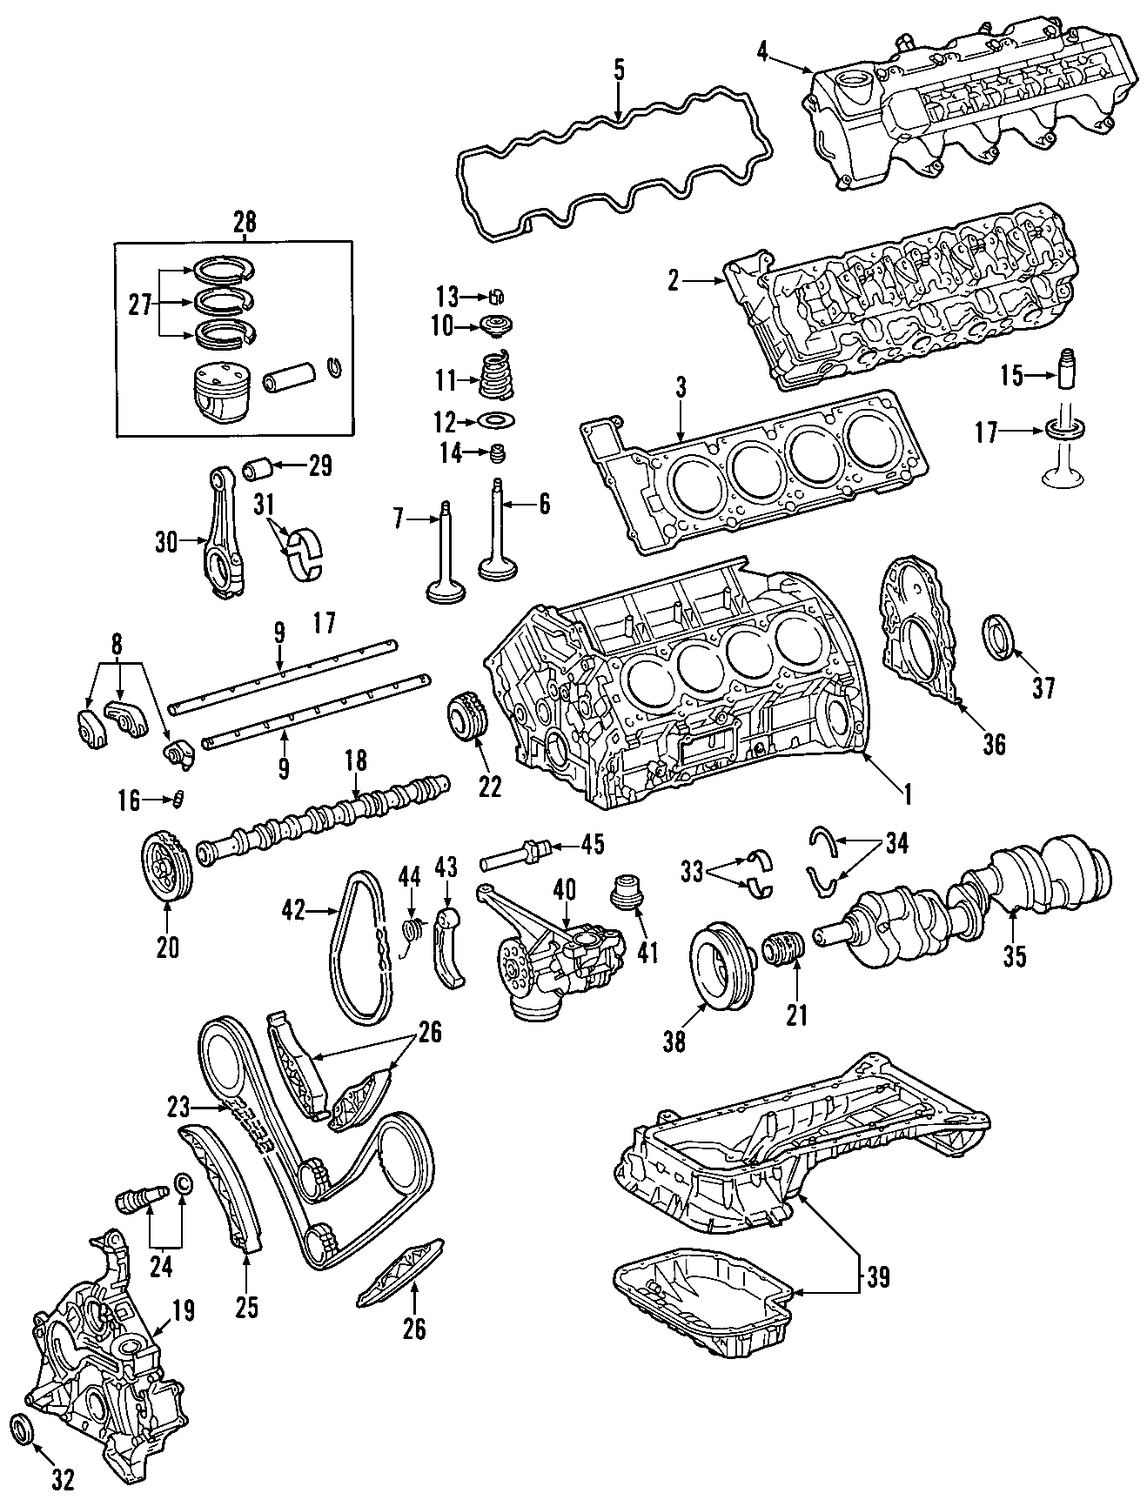 Mercedes Benz C230 Engine Diagram Trusted Wiring Diagrams S55 C240 Parts House Symbols U2022 Accessories